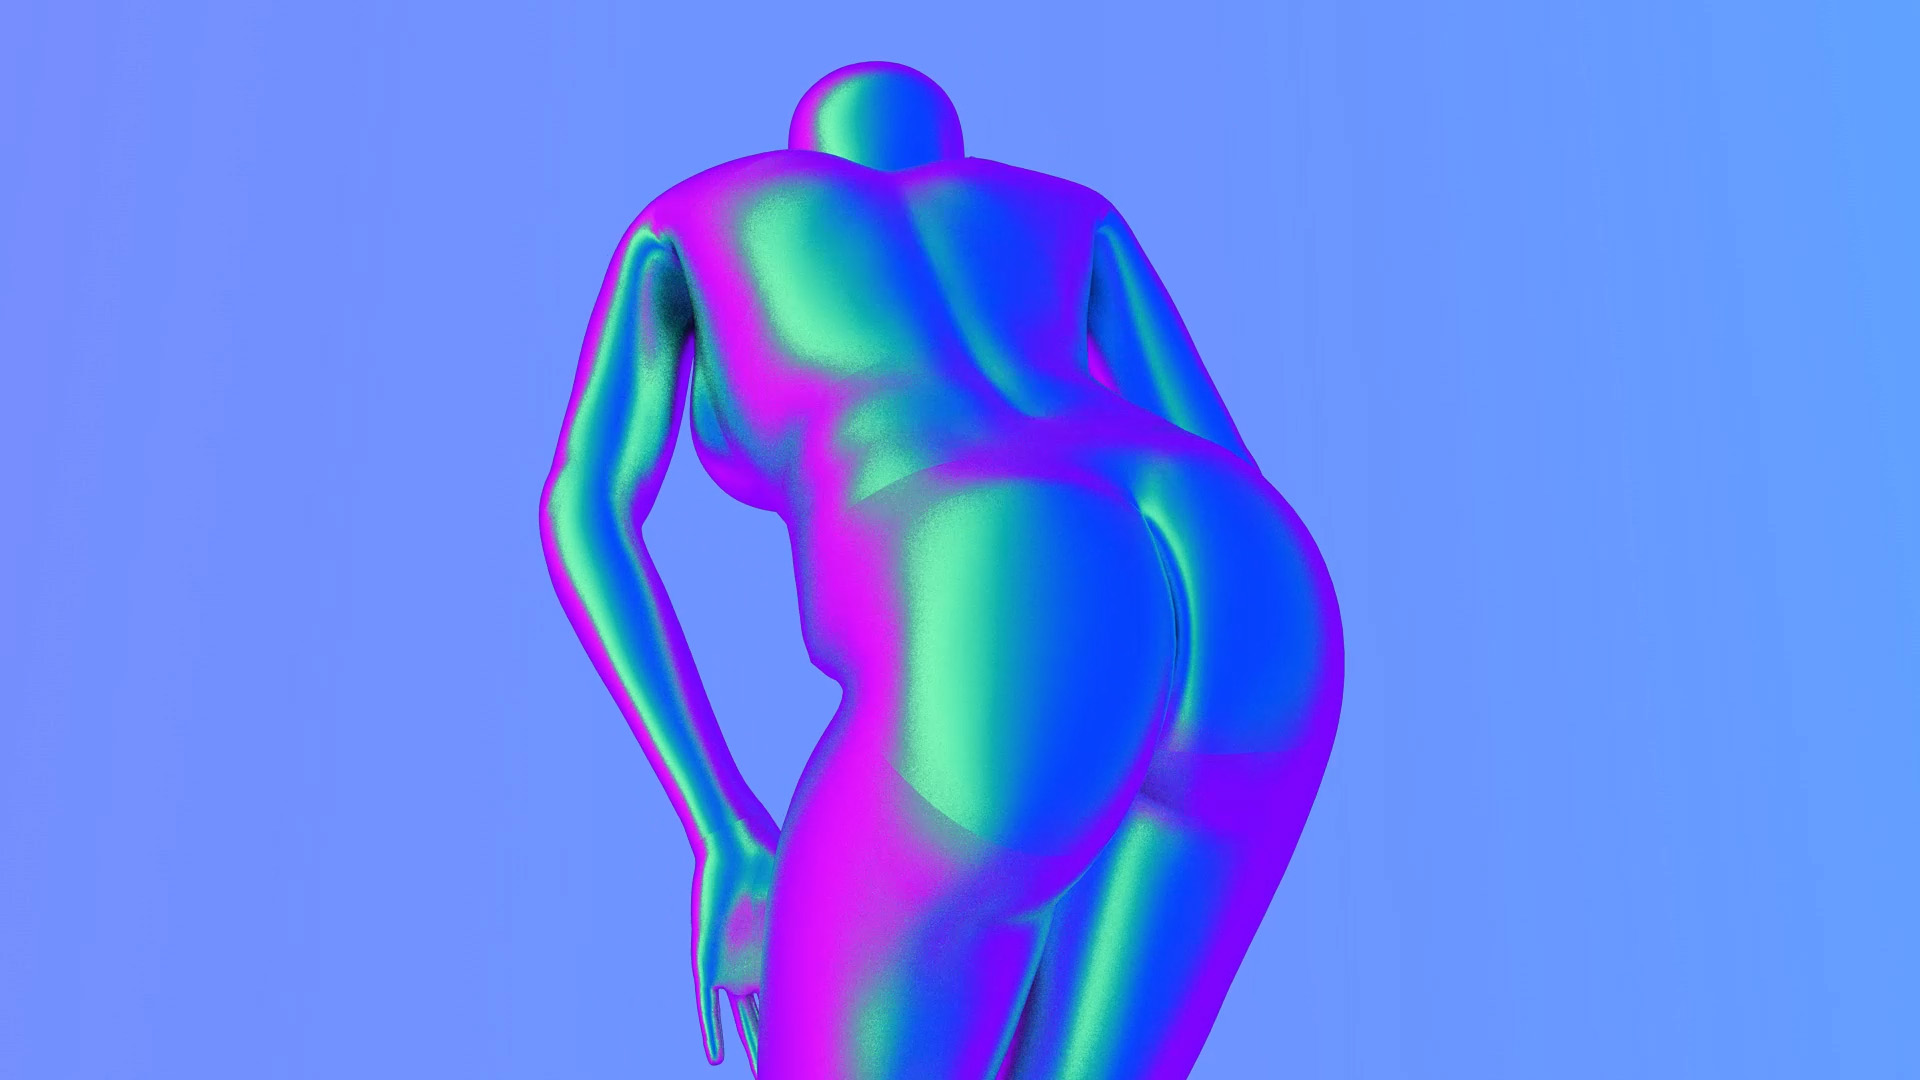 """Nicole Ruggiero    """"Falling""""   Nicole Ruggiero's work is inspired by all things internet. Nicole Ruggiero is a New York based 3d digital artist that incorporates various elements of technology, #netart, and modern-day internet"""